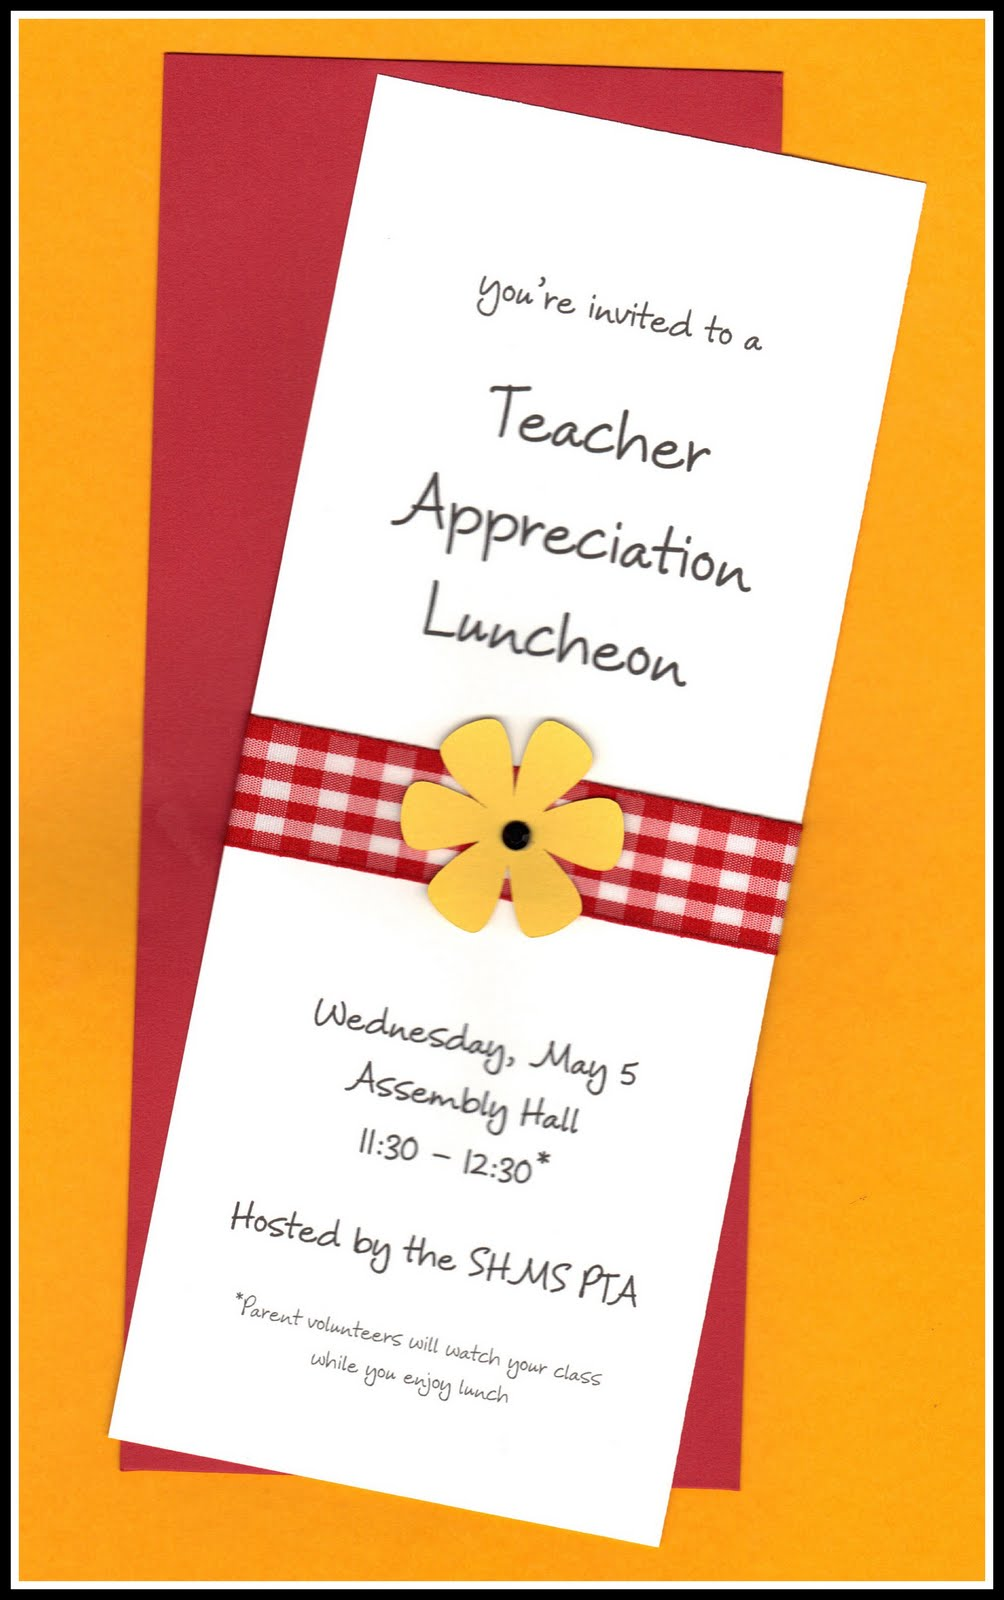 staff appreciation luncheon invitation wording. Black Bedroom Furniture Sets. Home Design Ideas